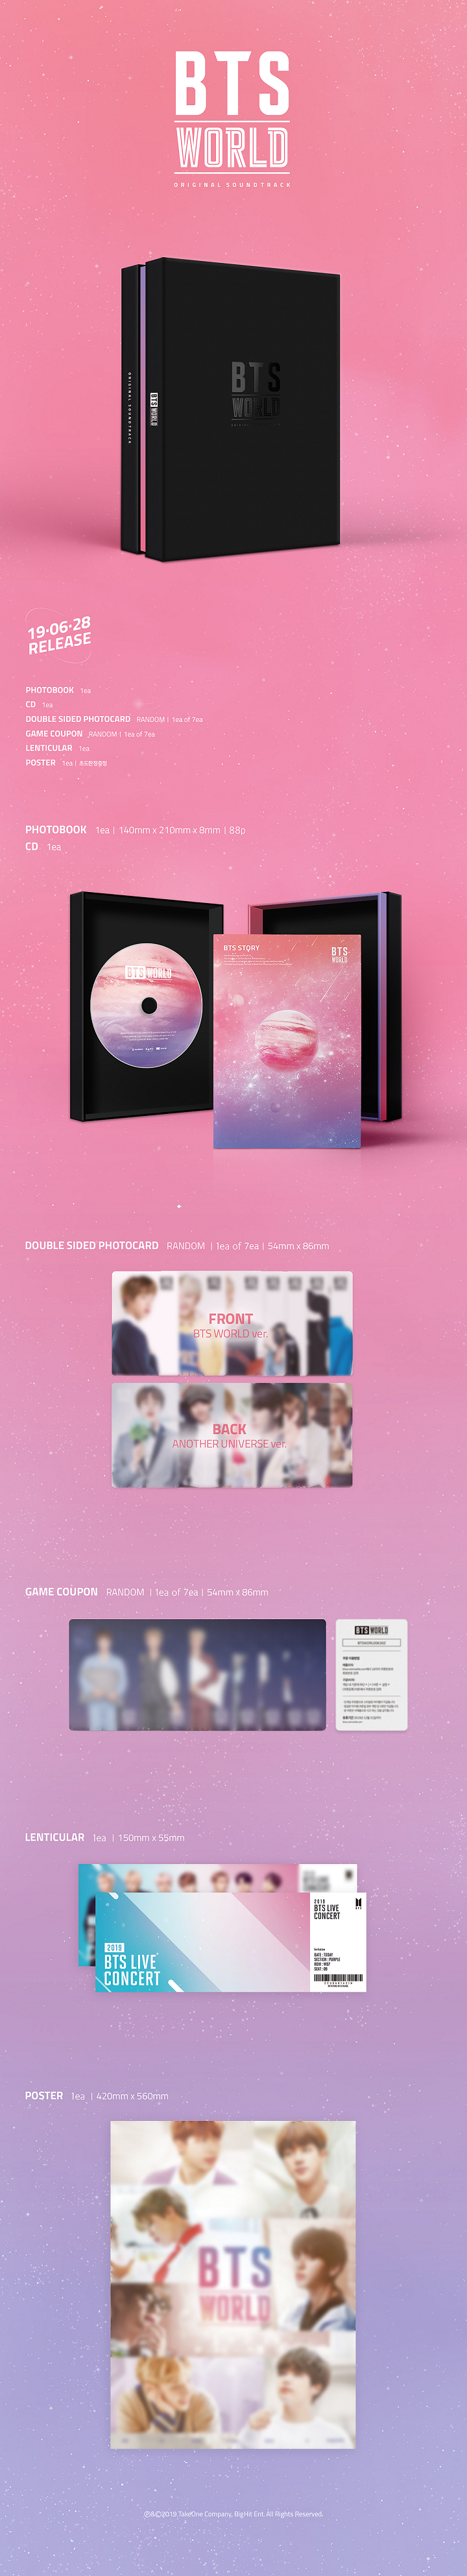 bts_world_pack_shot_